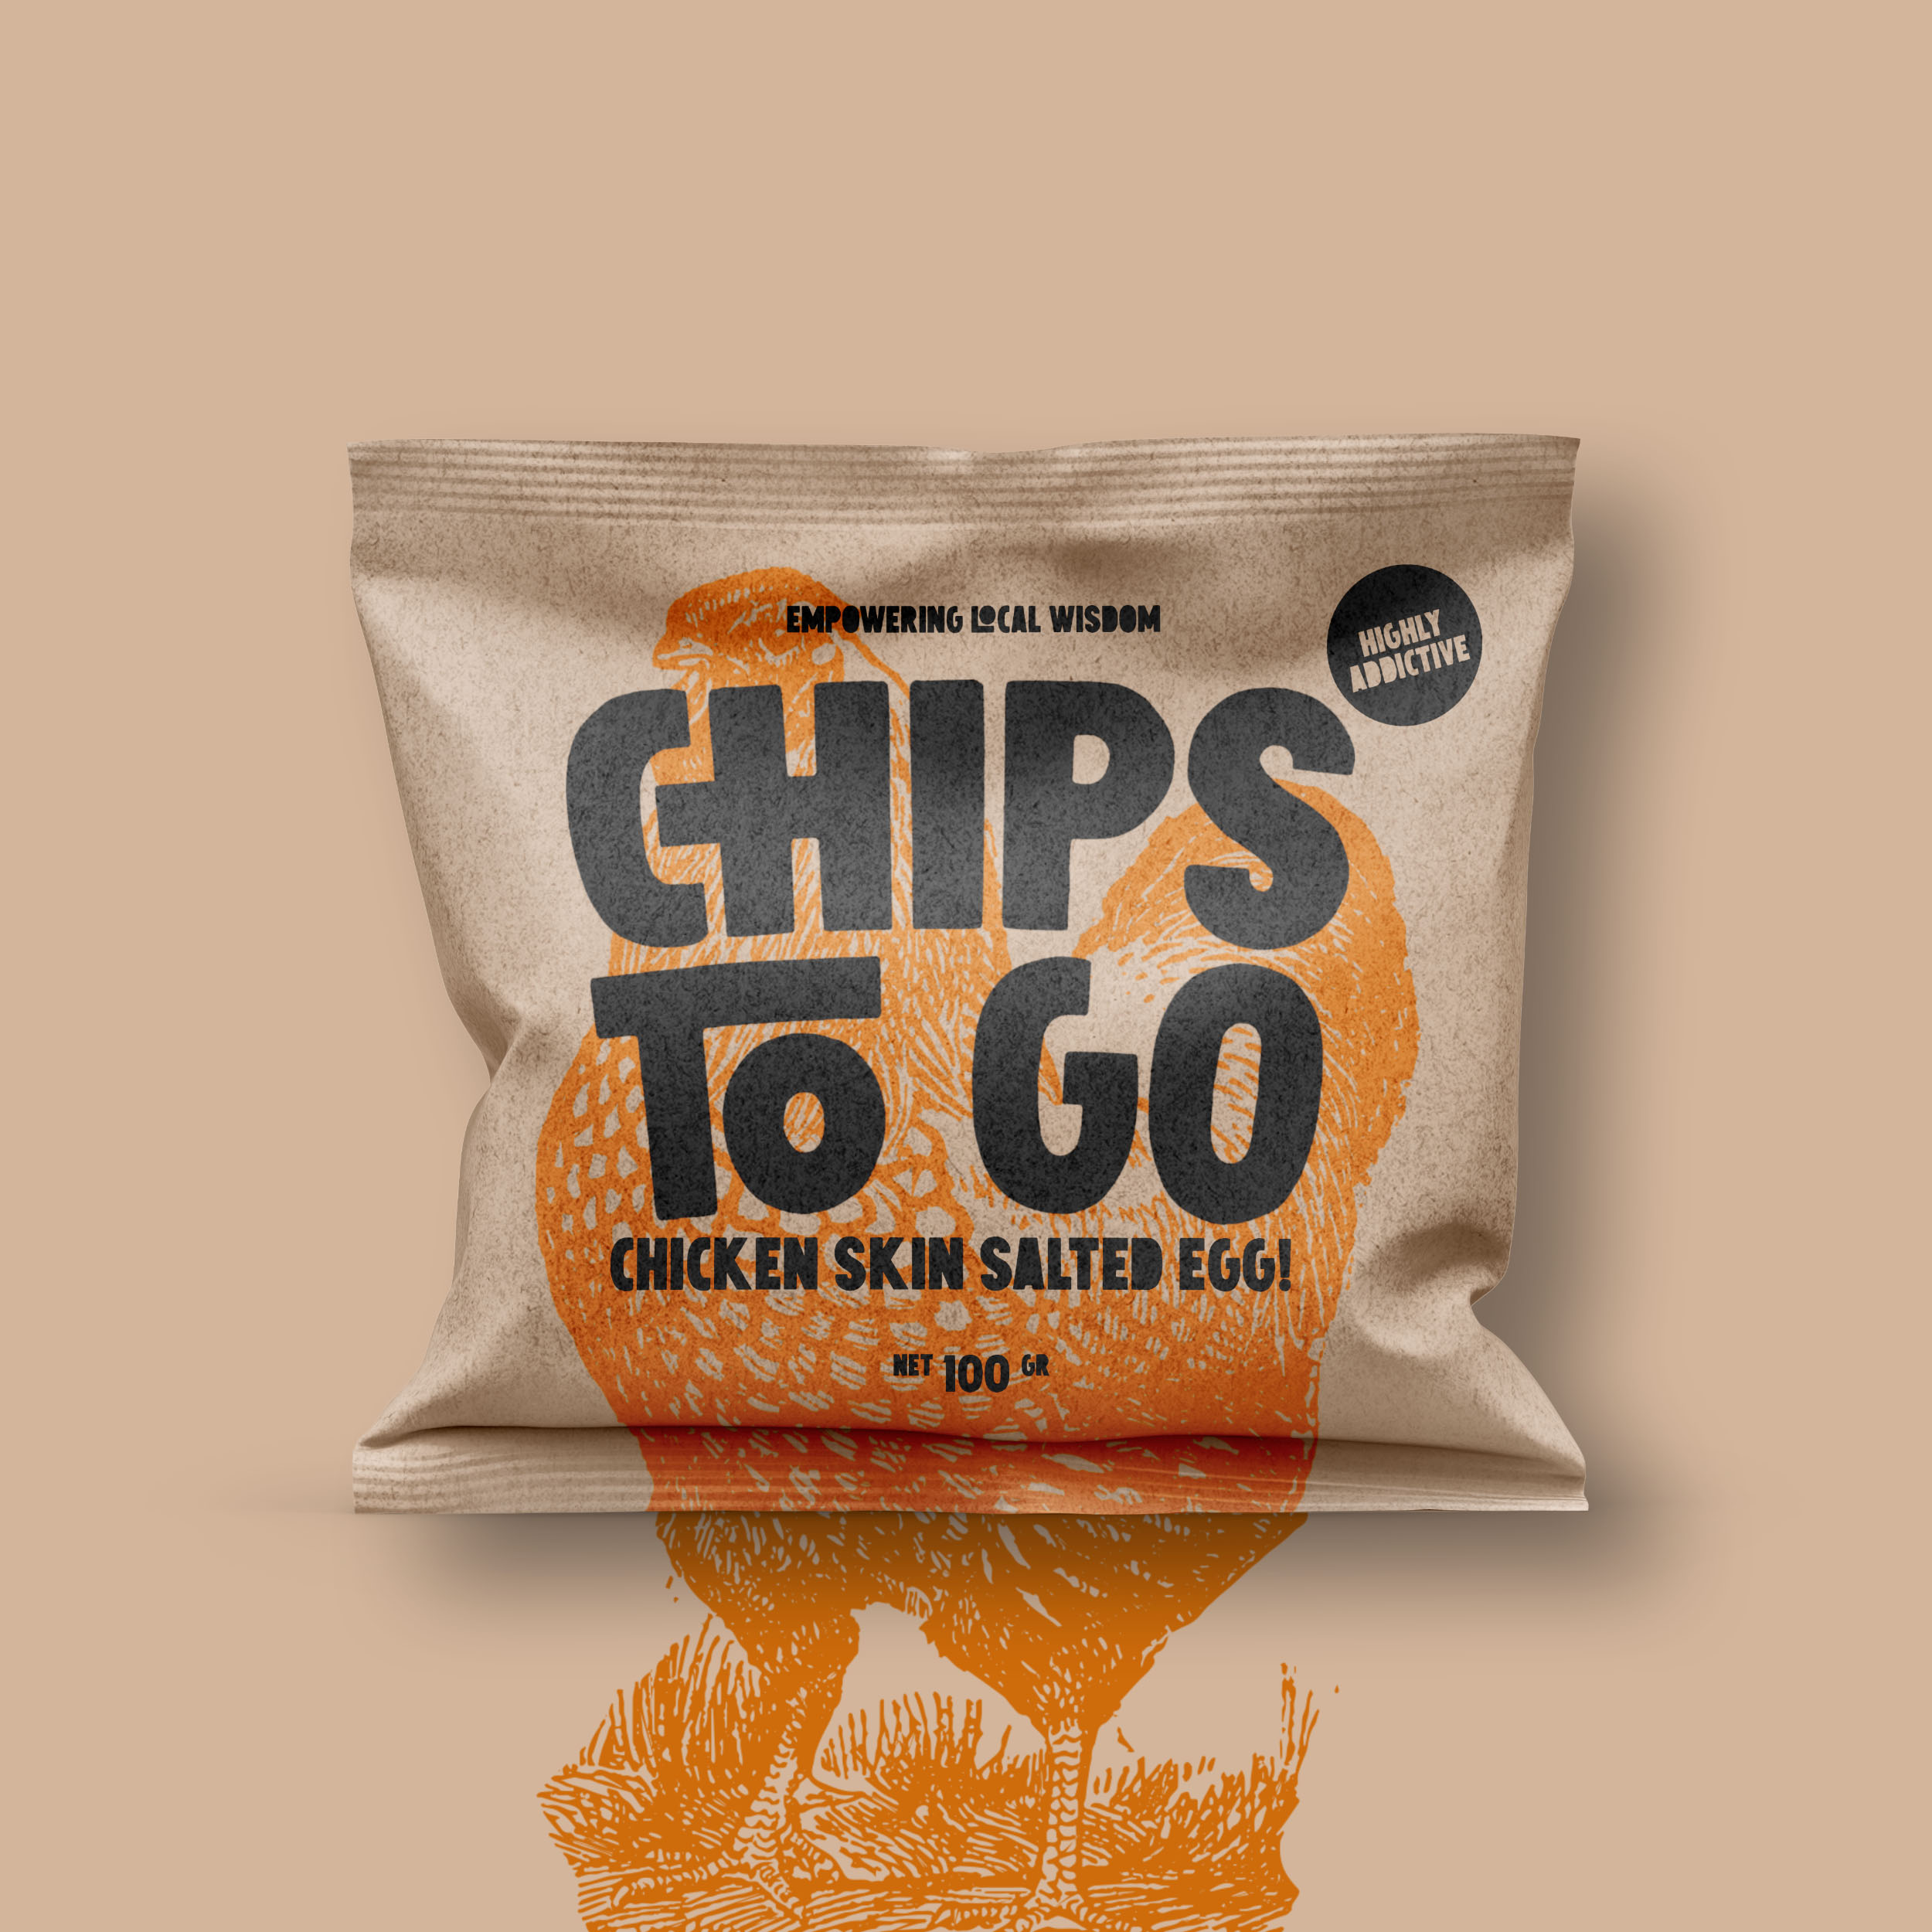 "Packaging Design for Chips To Go ""Empowering Local Wisdom"""